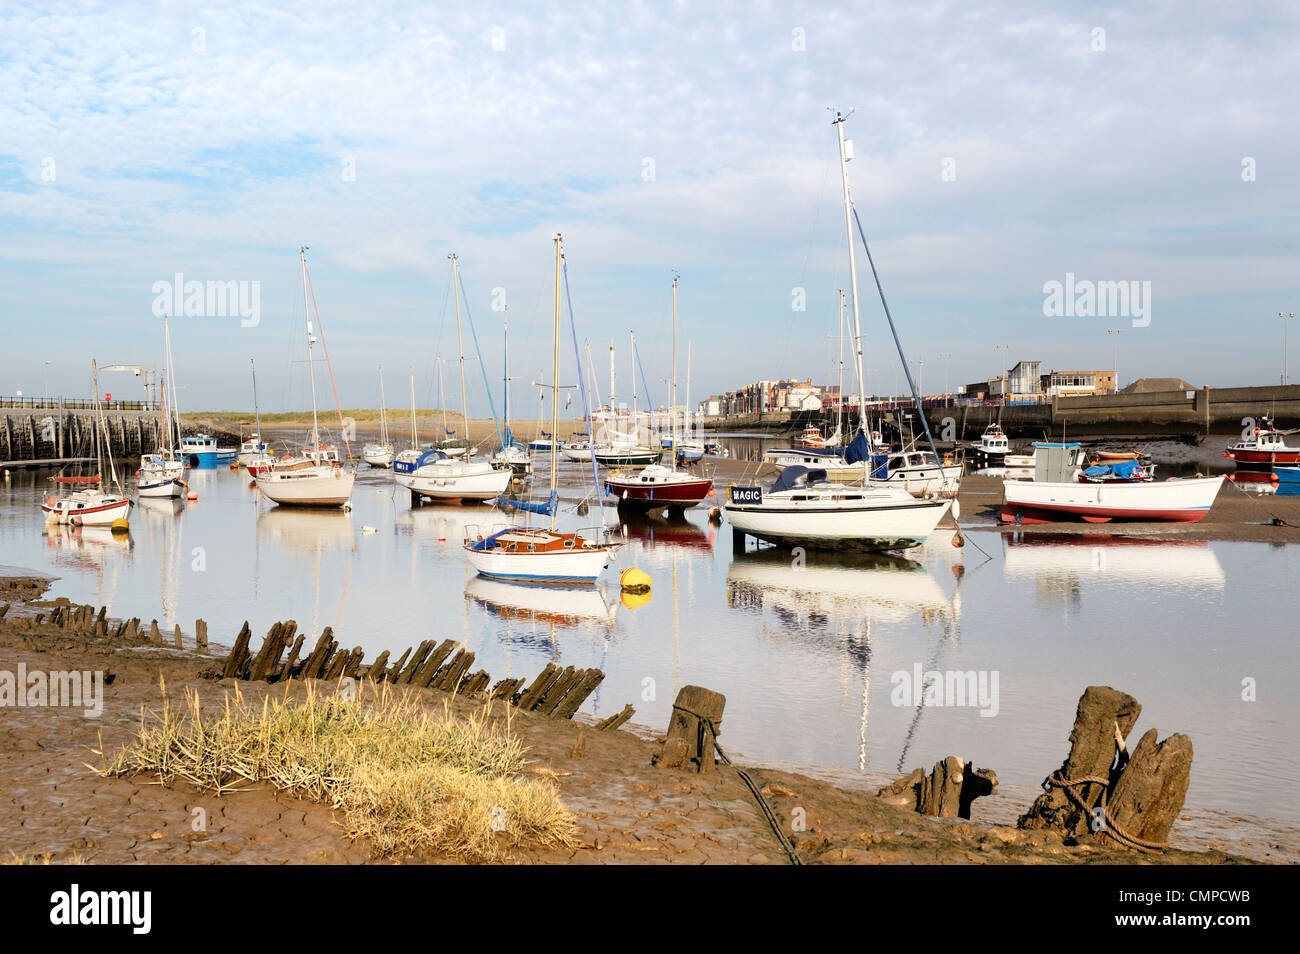 Sailing dinghies and leisure boats on the estuary of the River Clywd at the seaside resort of Rhyl, Denbighshire, - Stock Image